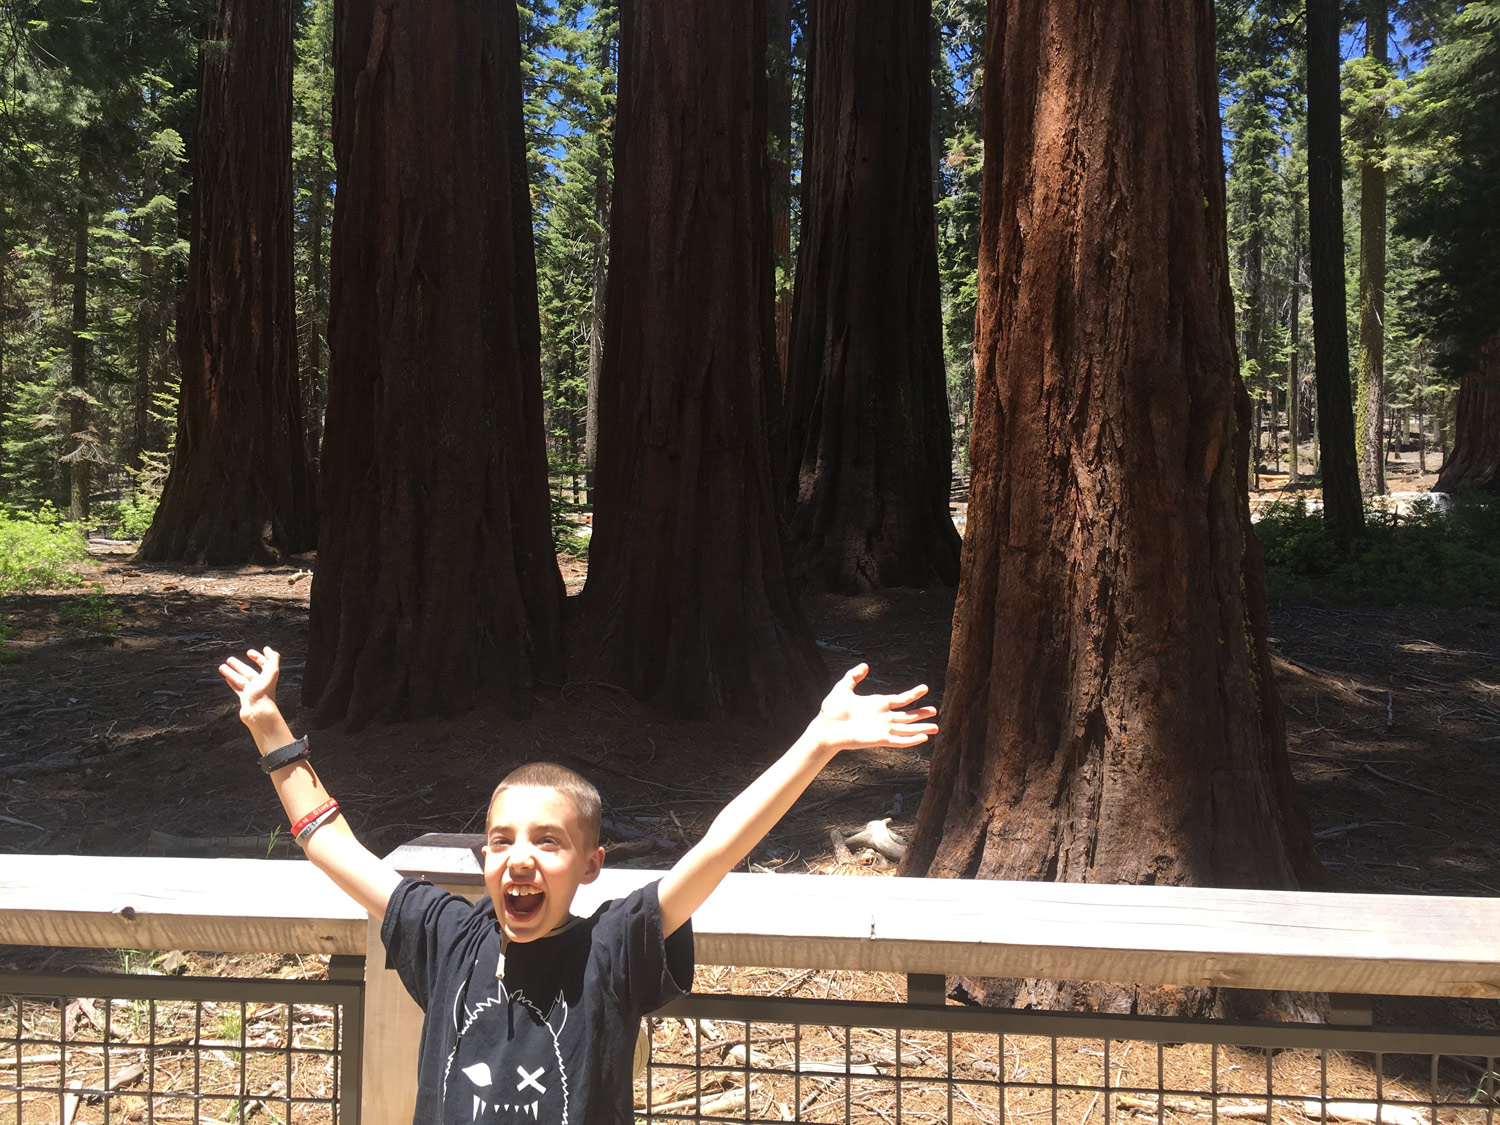 Finally a smile from Ridley! Being at Mariposa Grove was definitely a reason to smile.